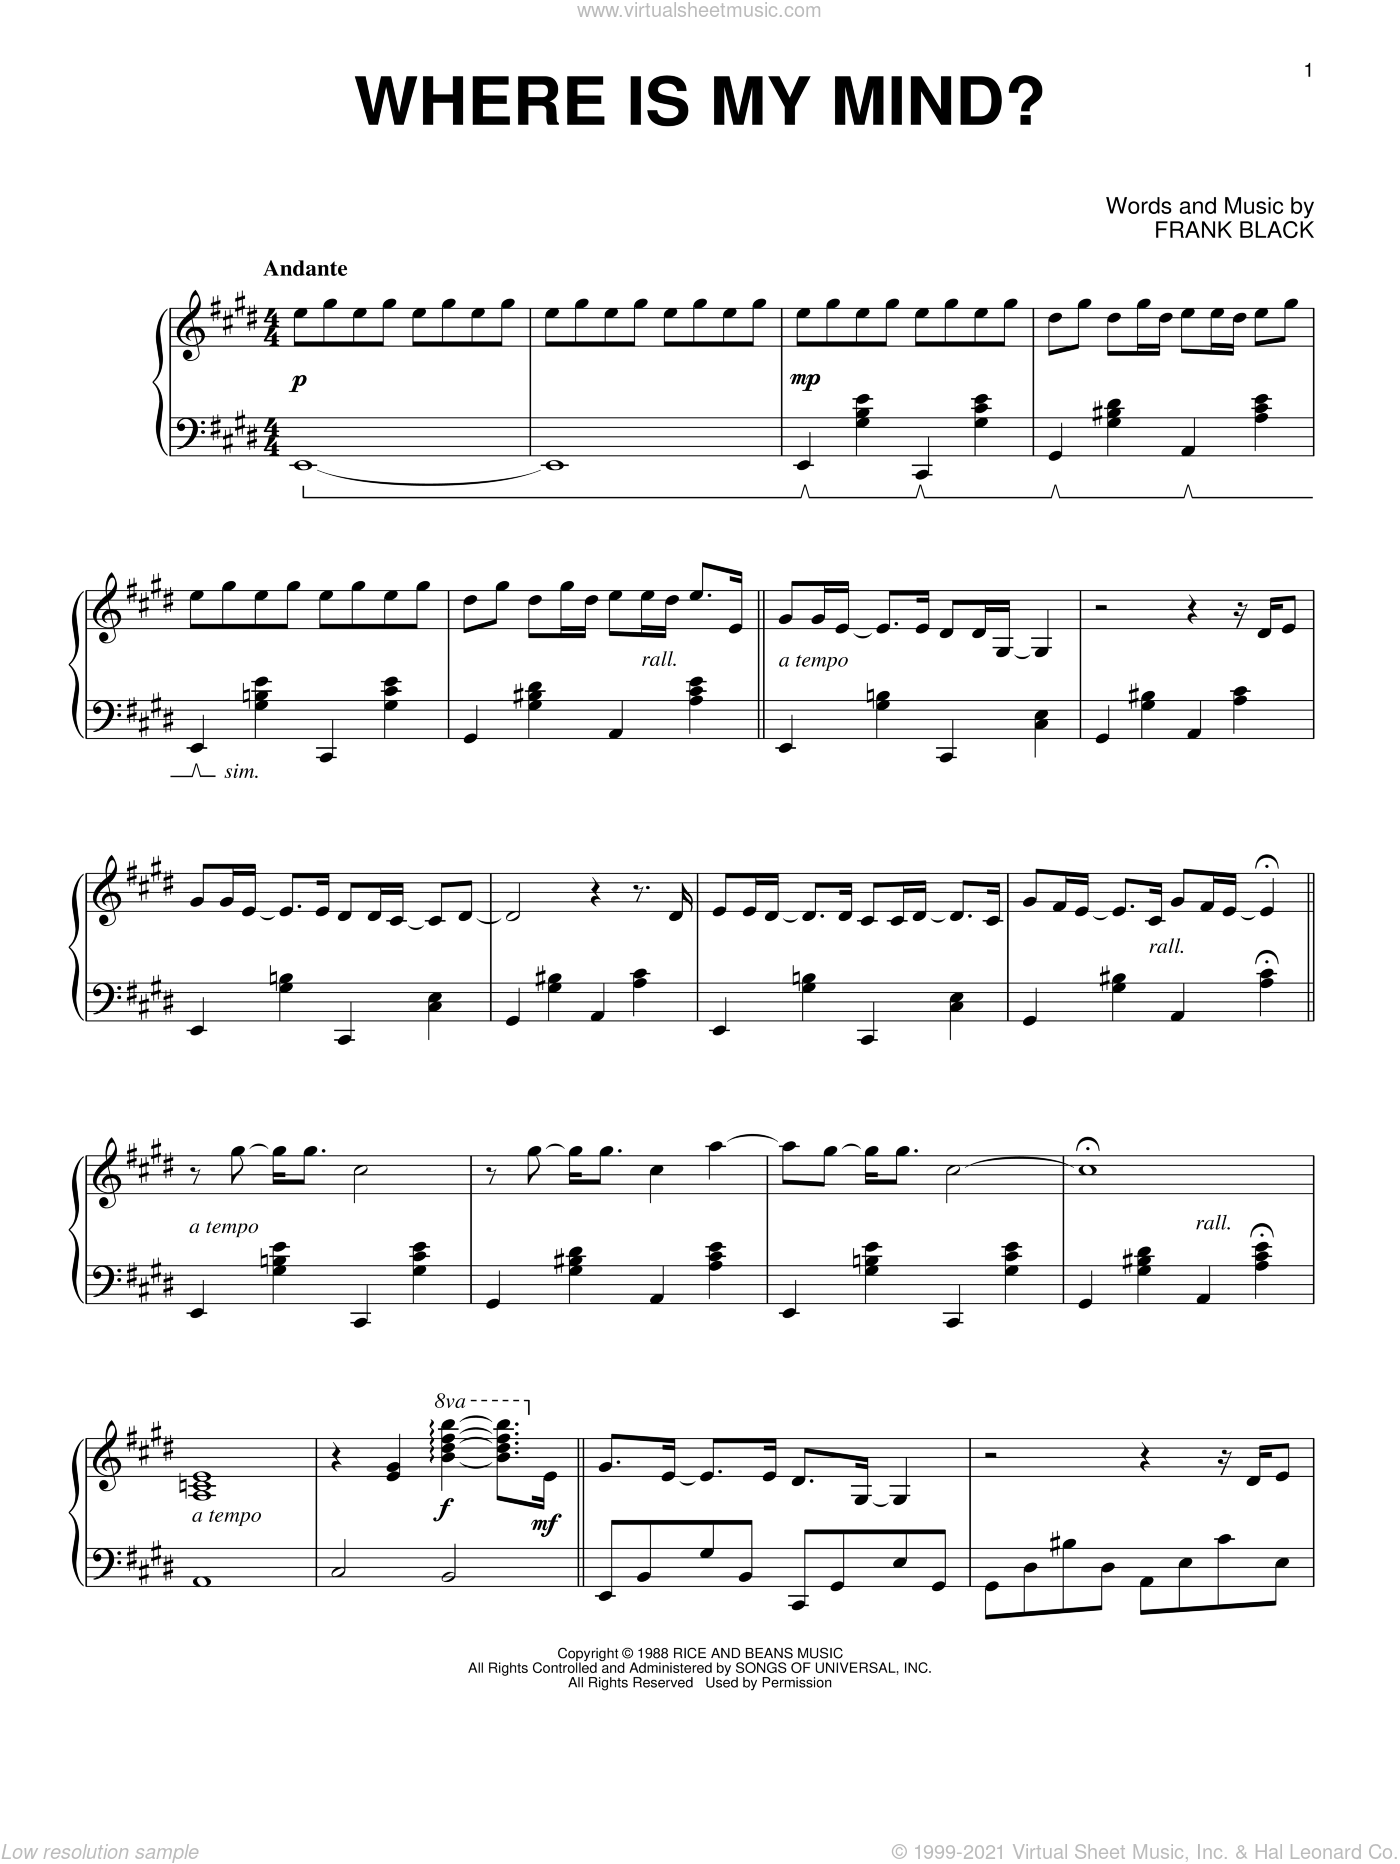 Where Is My Mind? sheet music for piano solo by Maxence Cyrin, Pixies and Francis Black, intermediate skill level